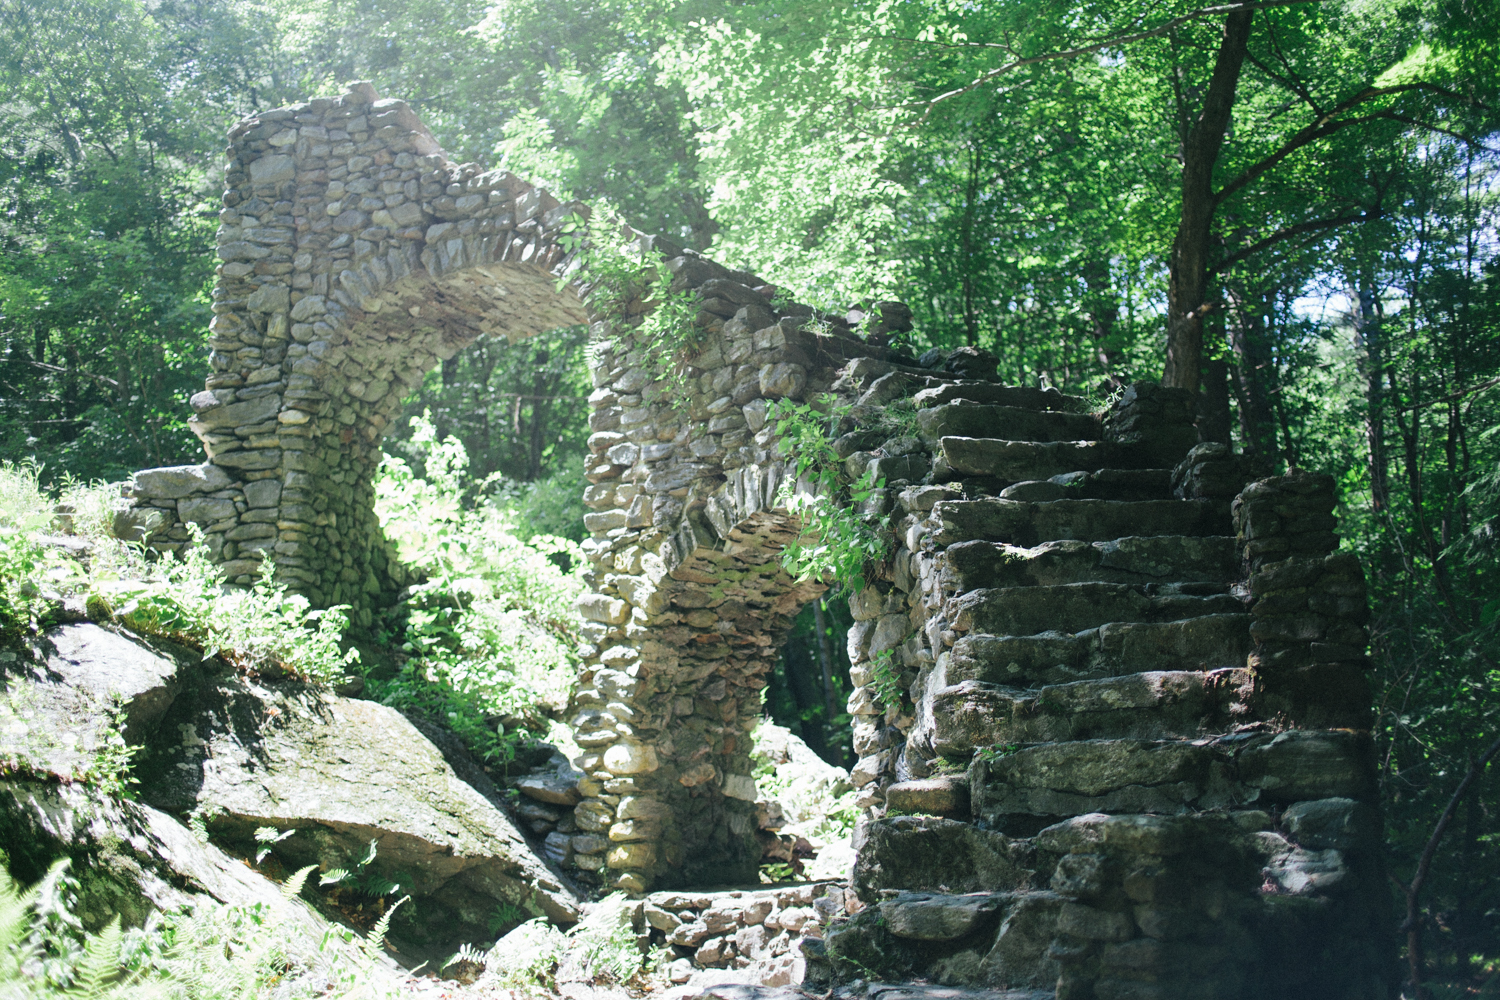 Madame Sherrie's Castle in Chesterfield, NH still has a stone staircase left! There is also a cement foundation and caved in basement behind it.